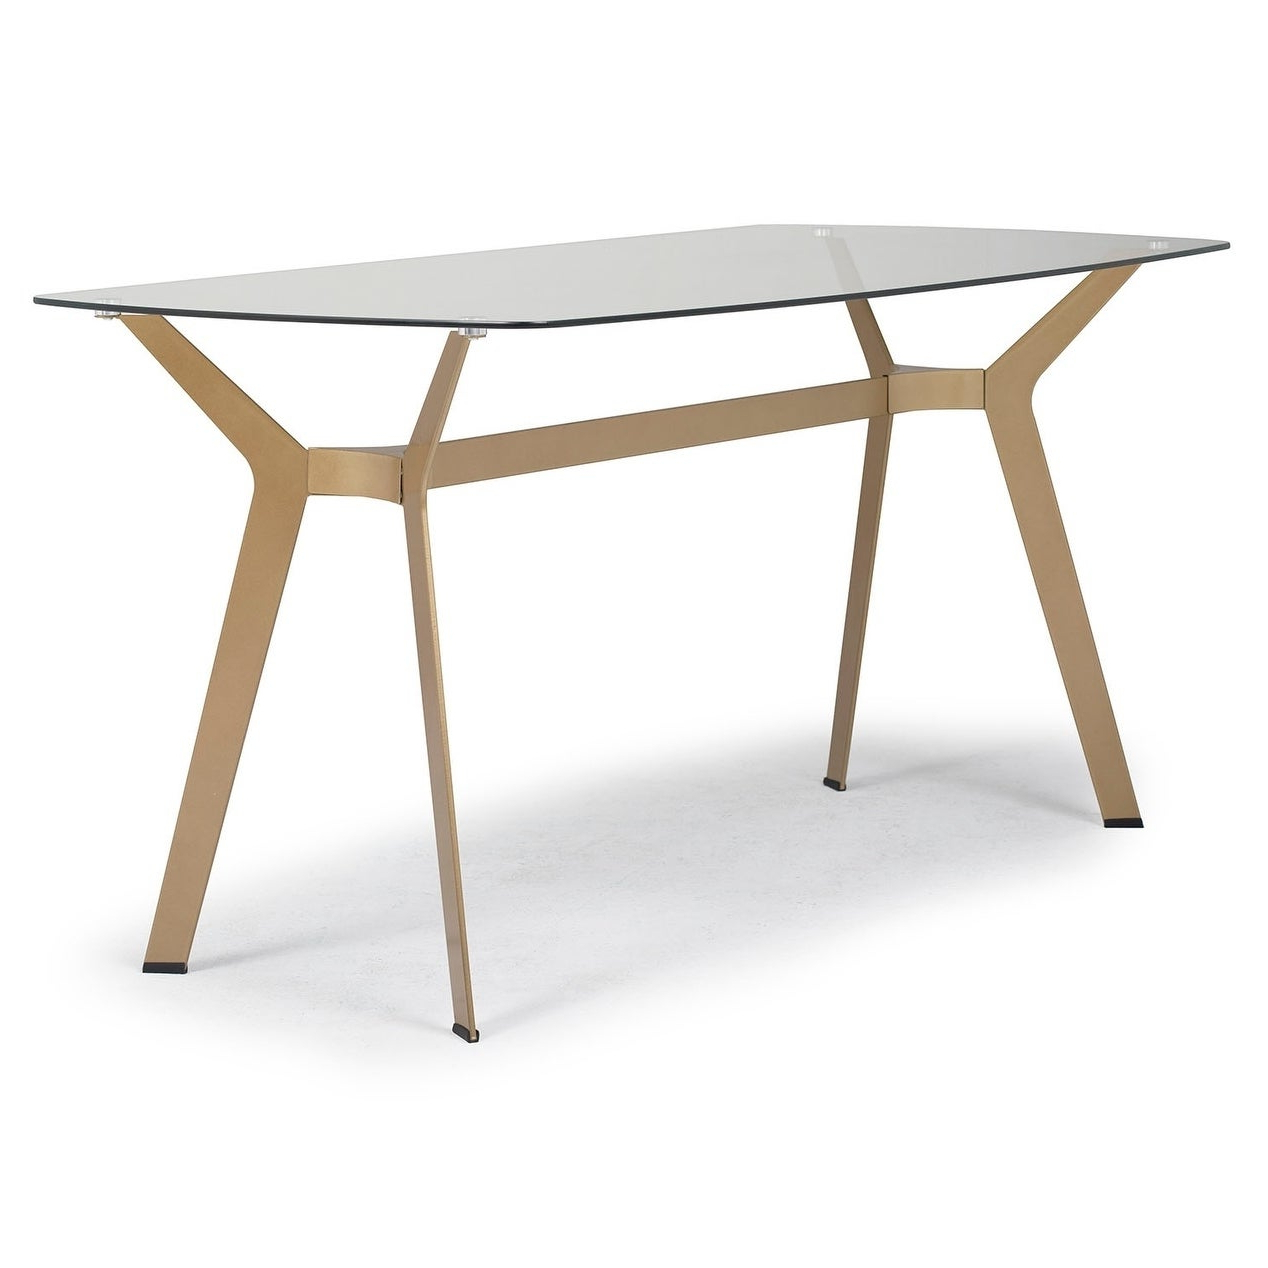 "Offex Home Archtech 60"" Modern Dining Table/desk In Gold/clear Glass With Current Modern Gold Dining Tables With Clear Glass (Gallery 13 of 30)"